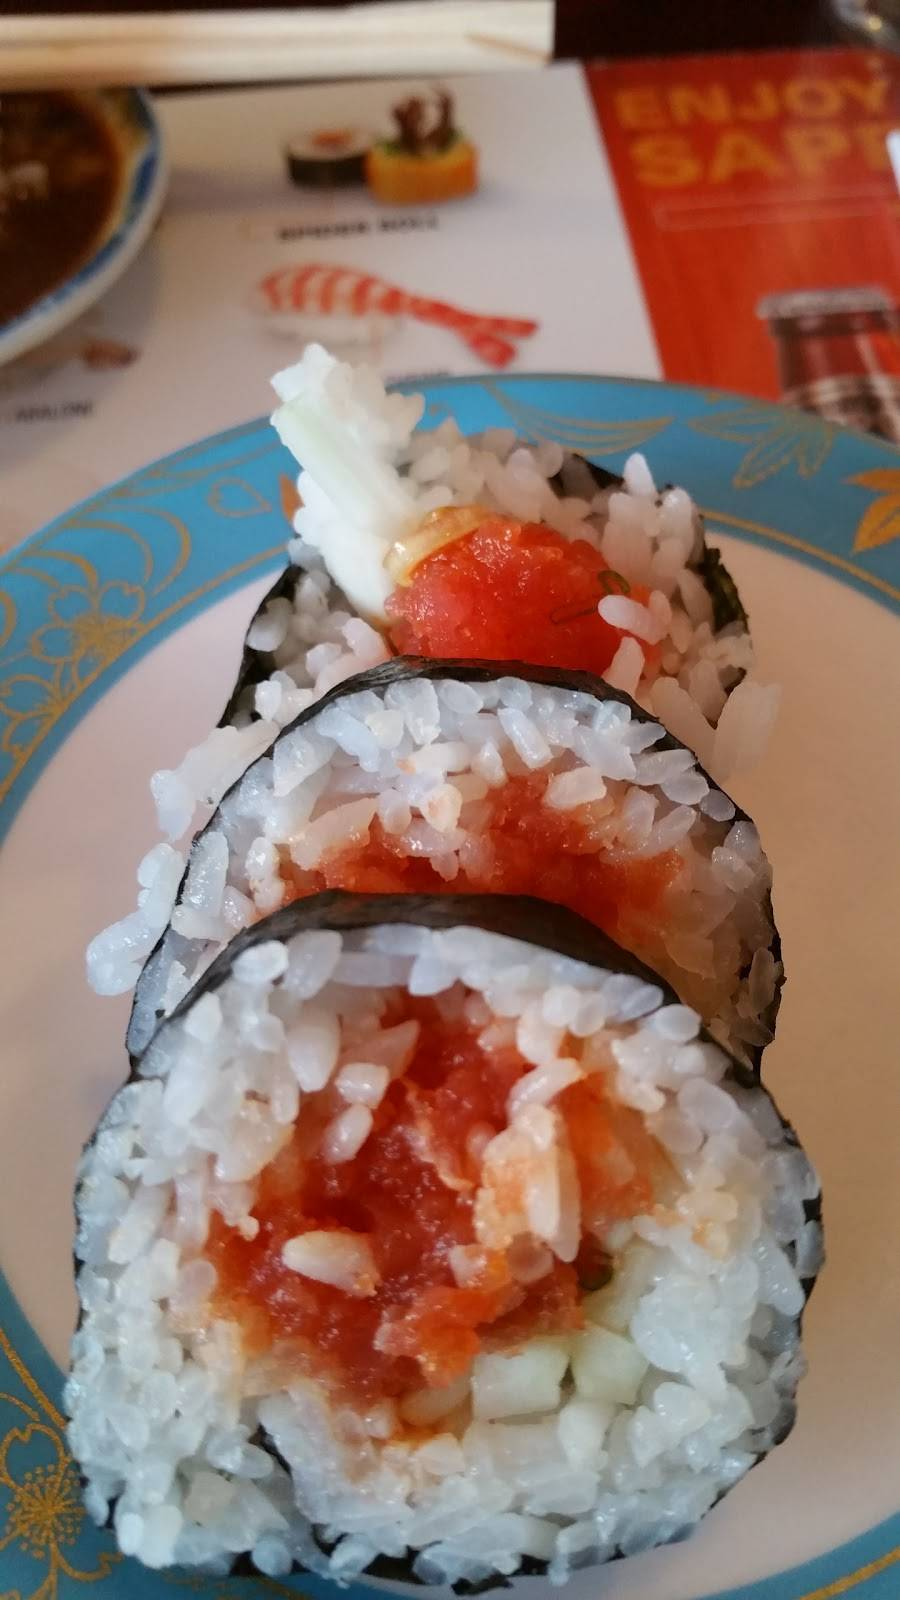 Taste of Tokyo   restaurant   159-163 McHenry Rd, Buffalo Grove, IL 60089, USA   8474591656 OR +1 847-459-1656